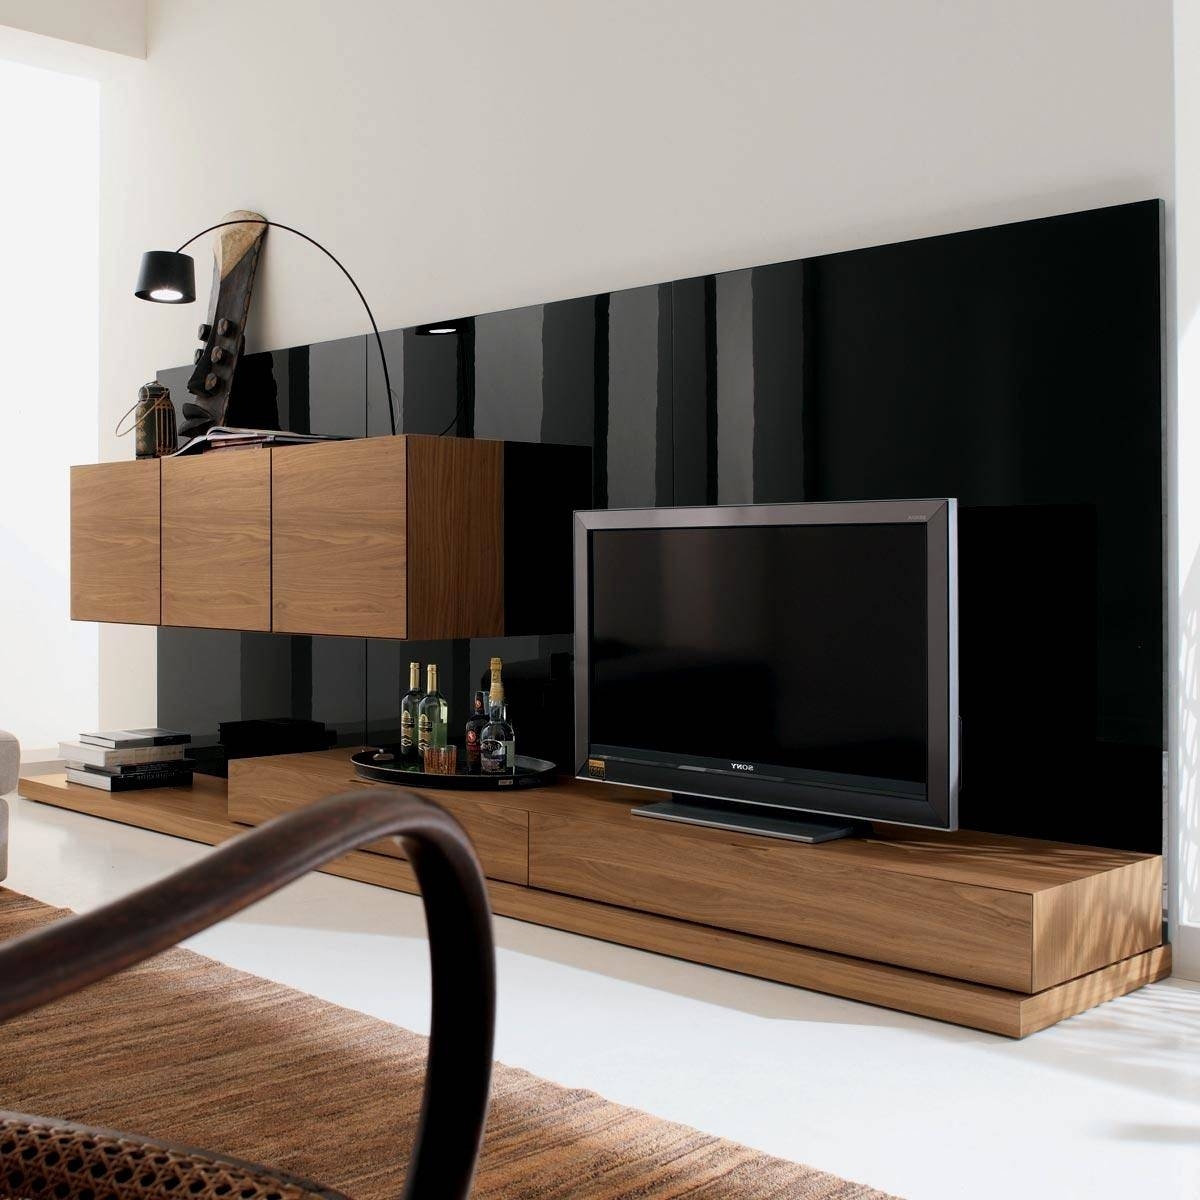 Design For Tv Cabinet Modern Raya Furniture Jpg Impressive Home within Modern Design Tv Cabinets (Image 10 of 15)